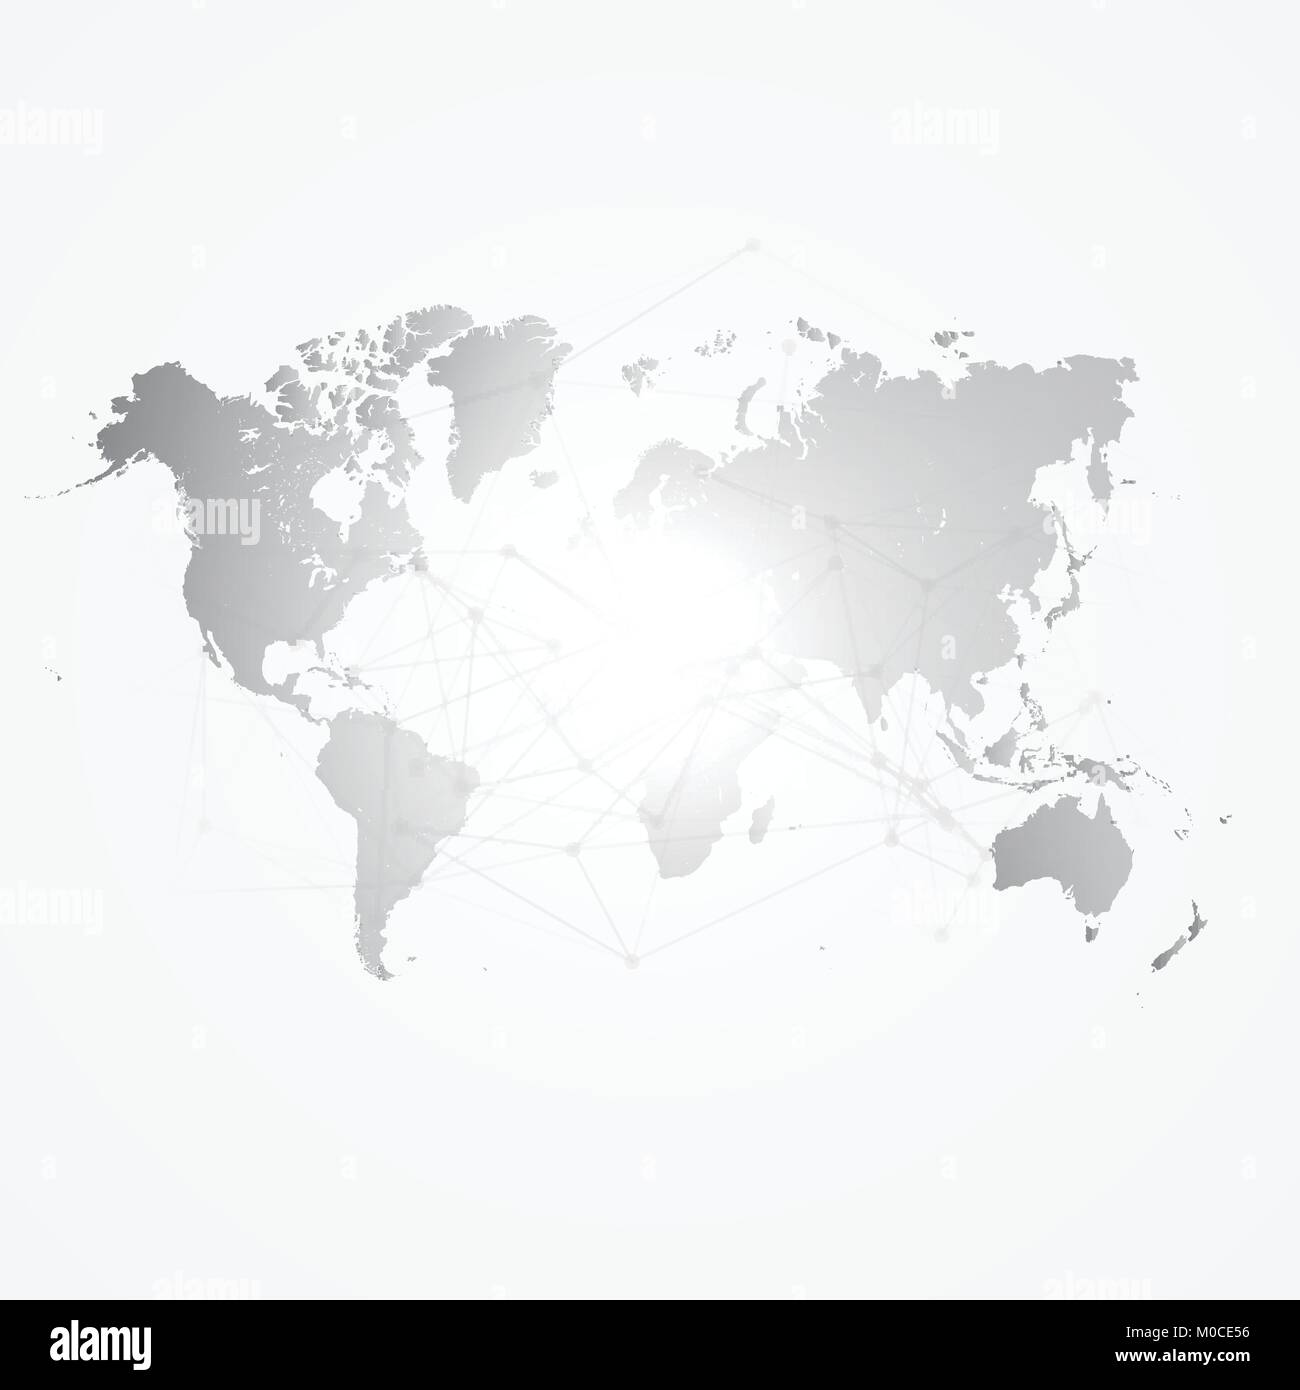 World map silhouette with connection grid vector illustration world map silhouette with connection grid vector illustration background network concept design gumiabroncs Image collections